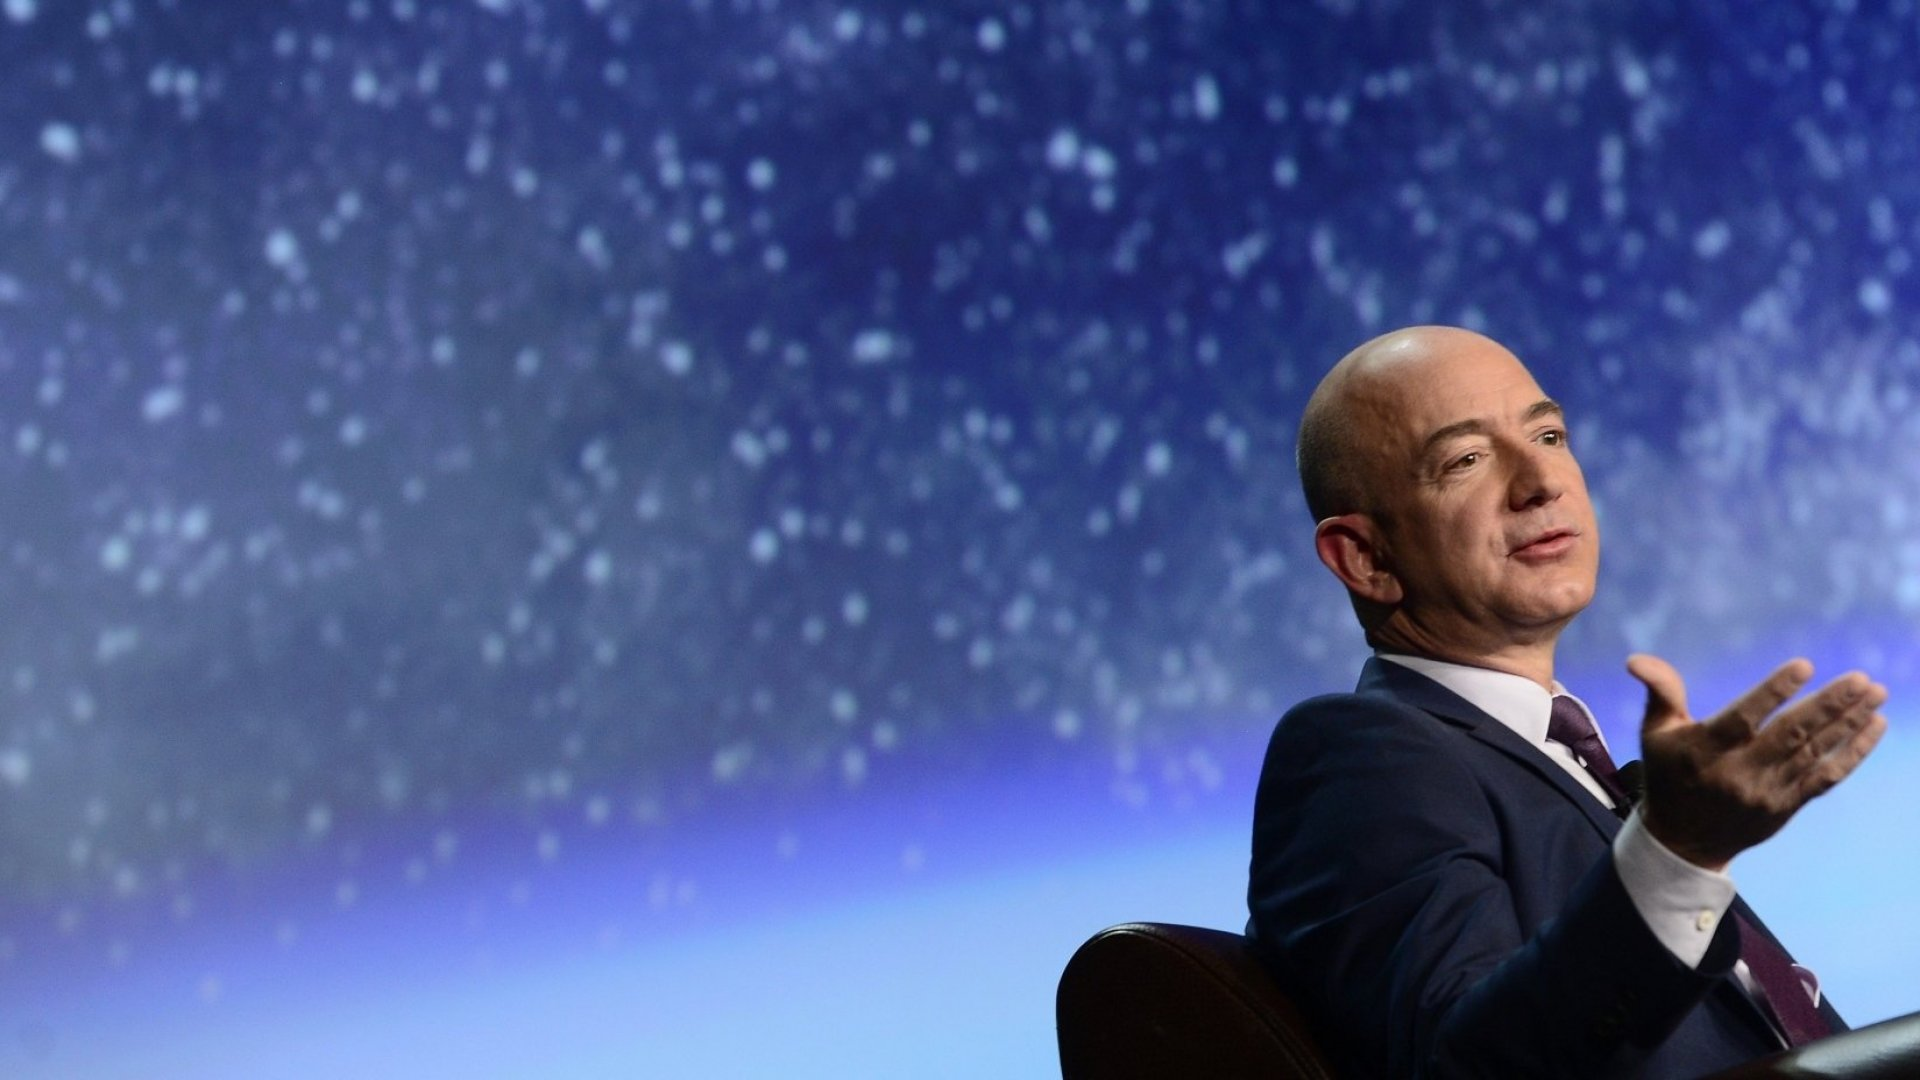 Jeff Bezos's Motto Is a 2-Word Latin Phrase That Perfectly Captures His Approach to Success